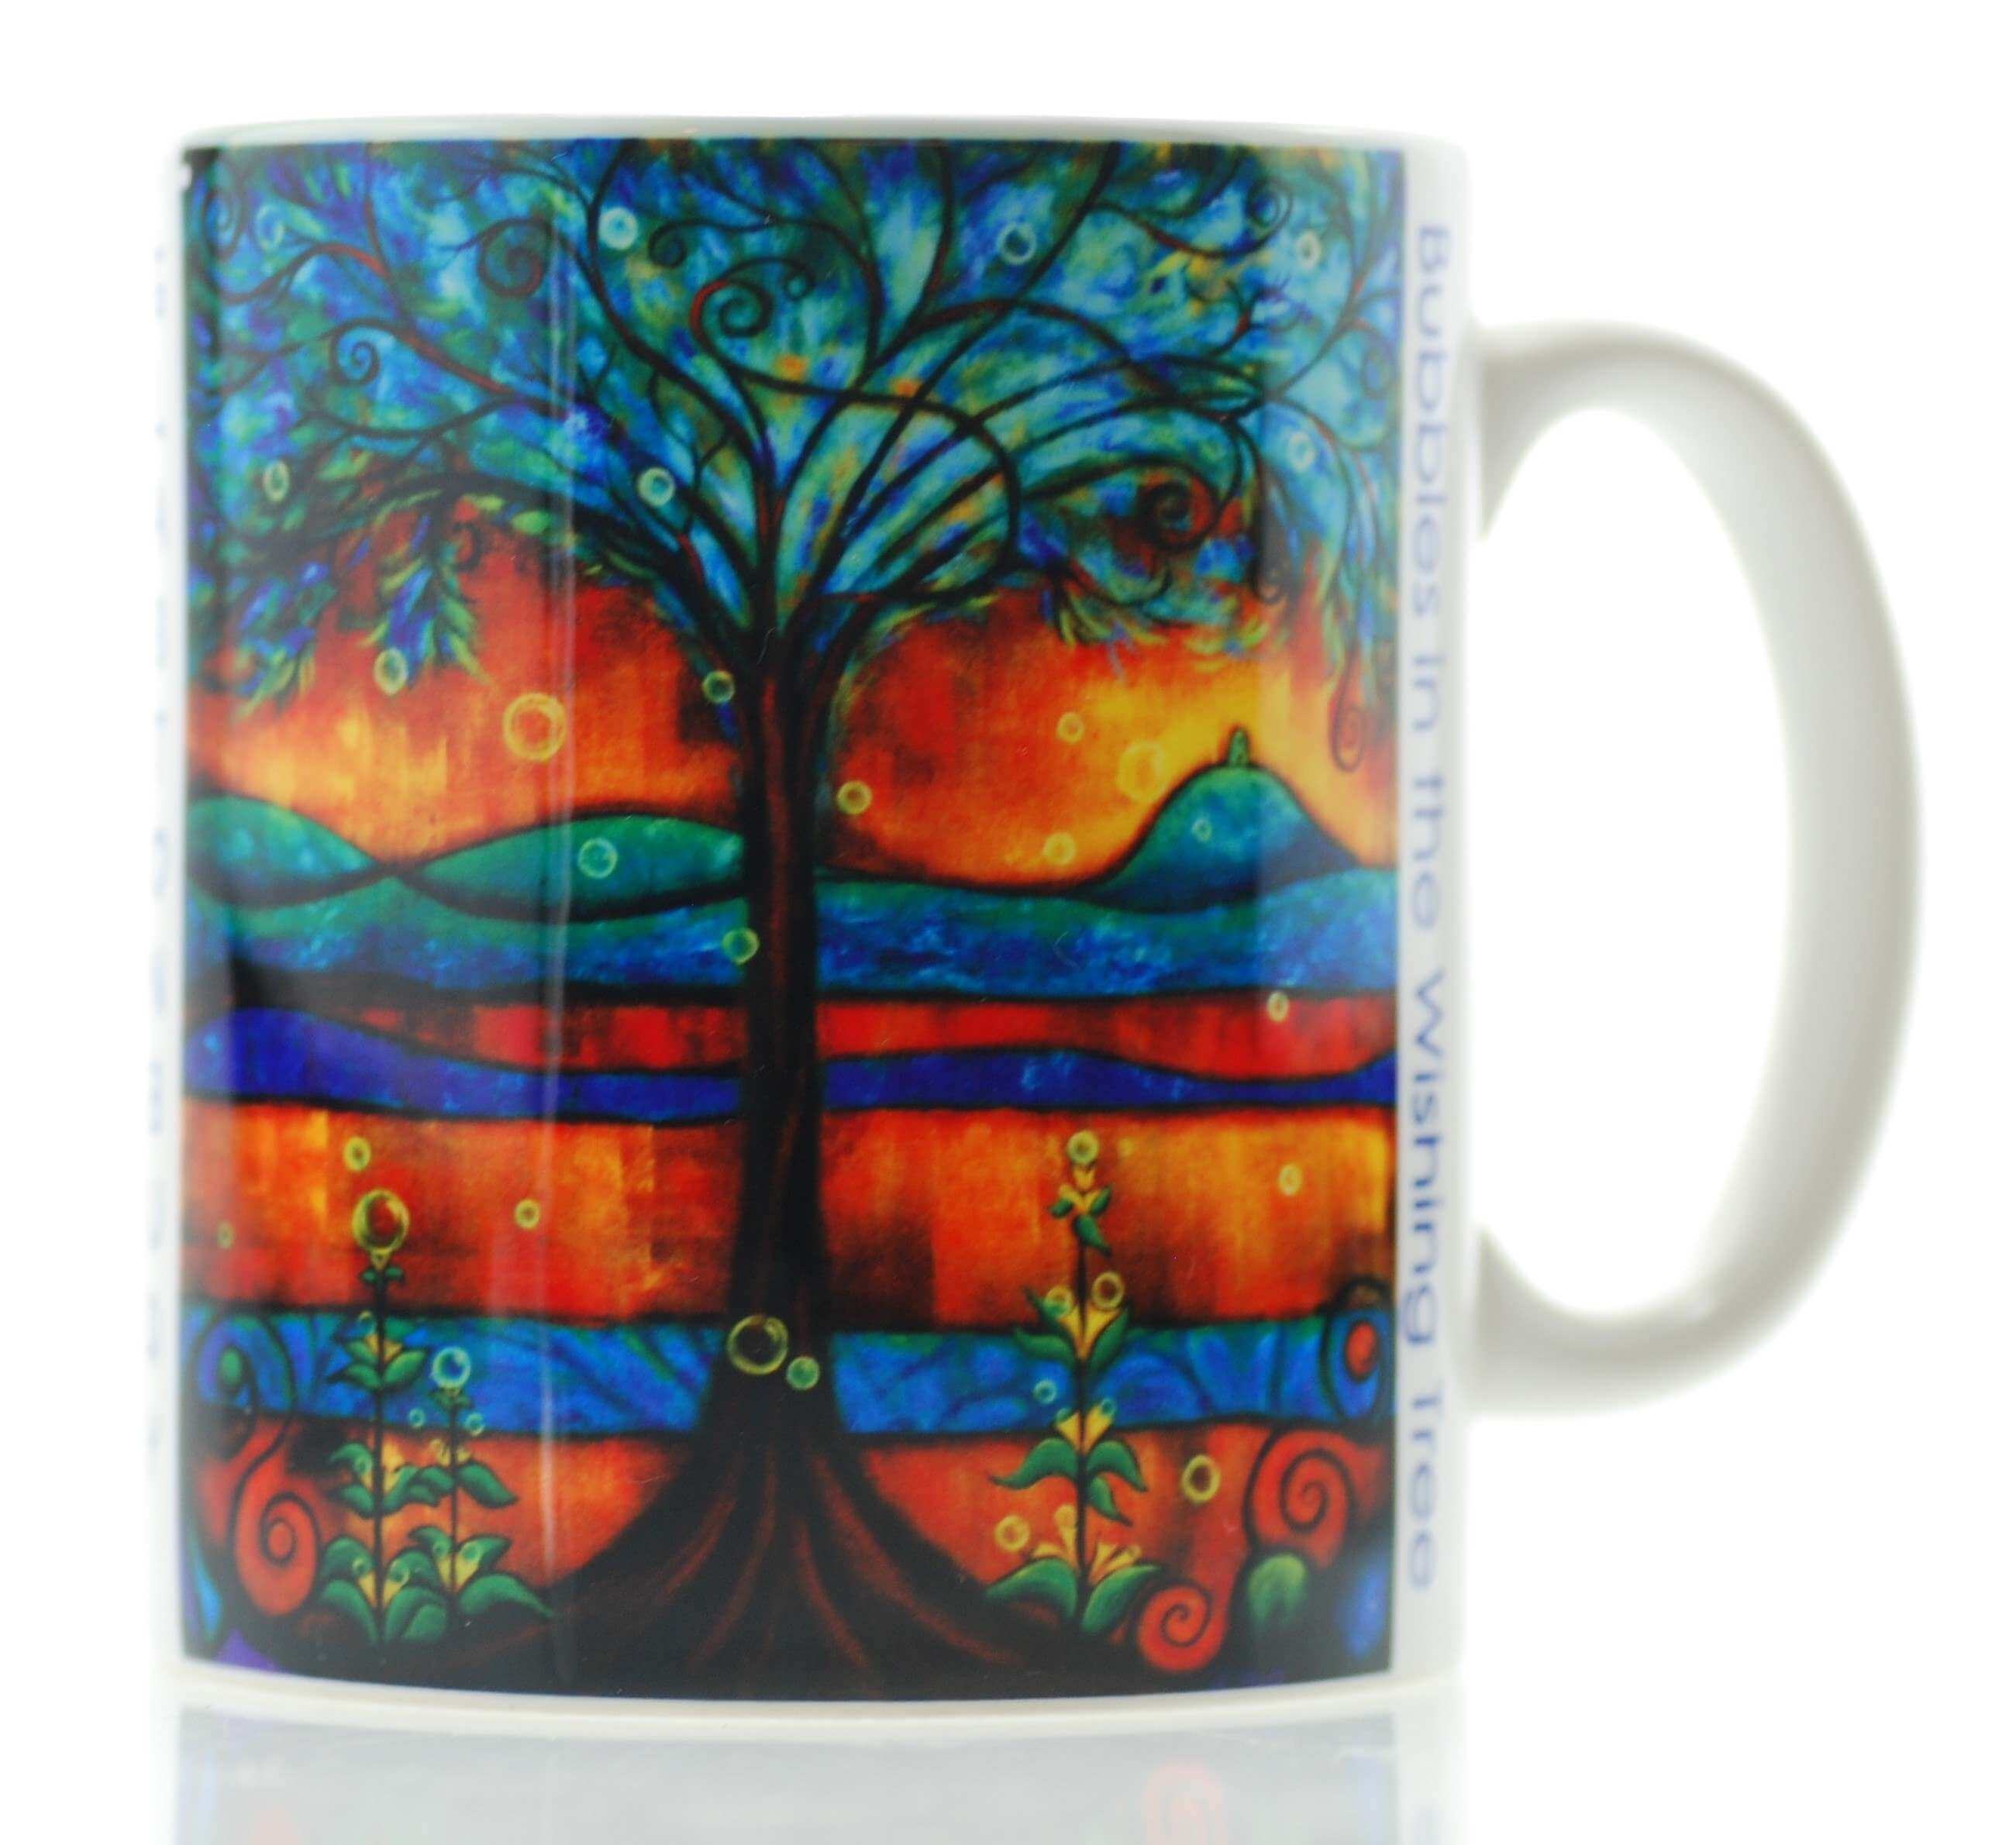 Bubbles in the Wishing Tree Mug